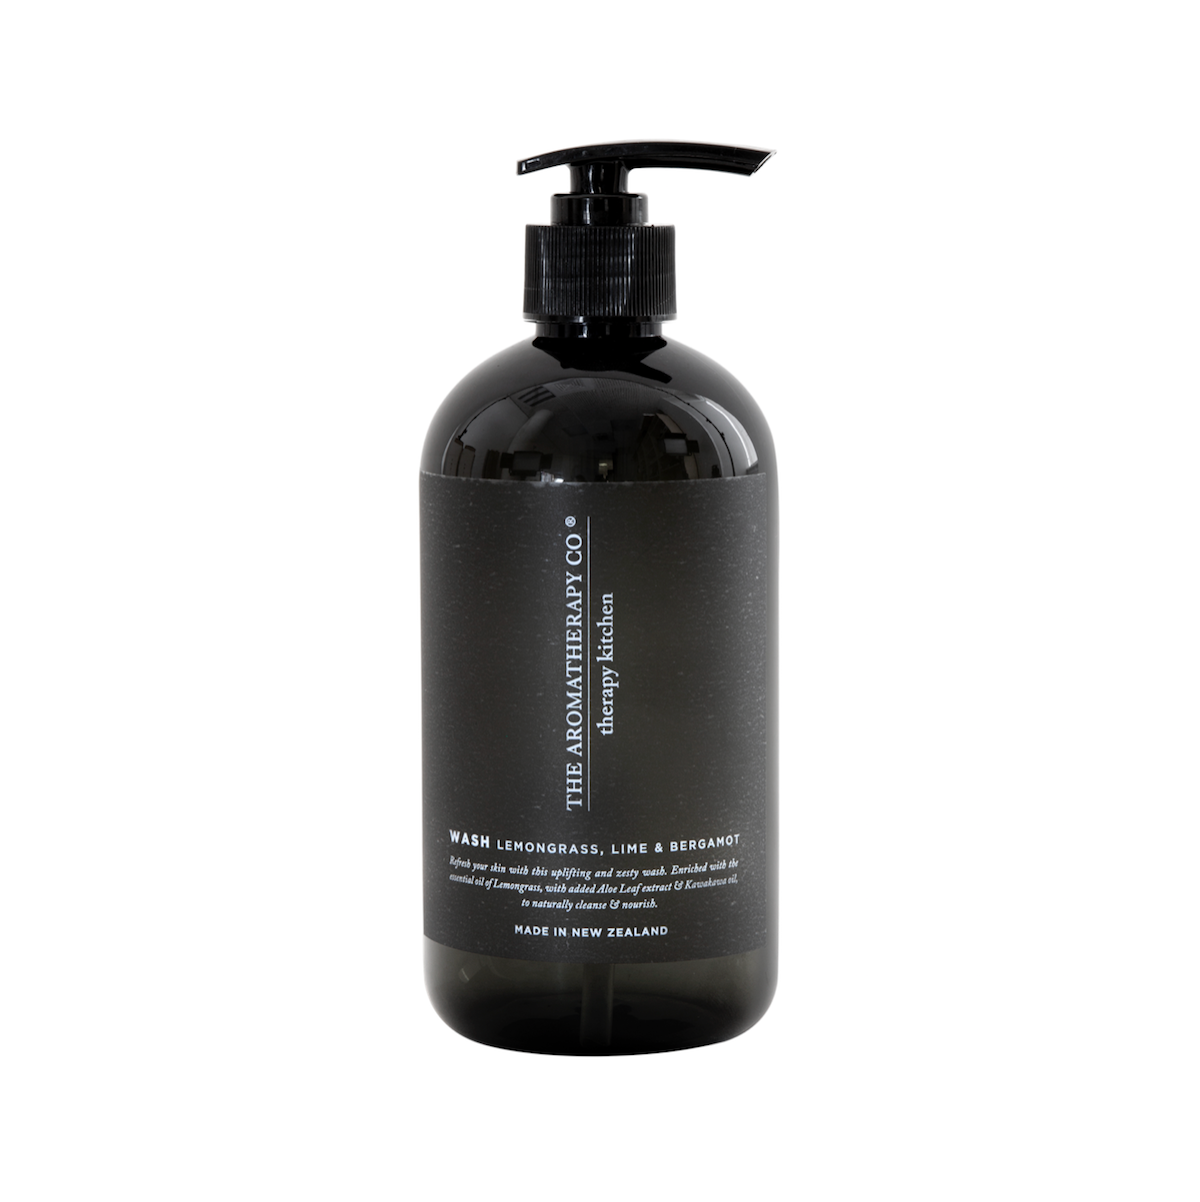 Therapy Kitchen Hand Wash | Lemongrass, Lime and Bergamot Hand Wash